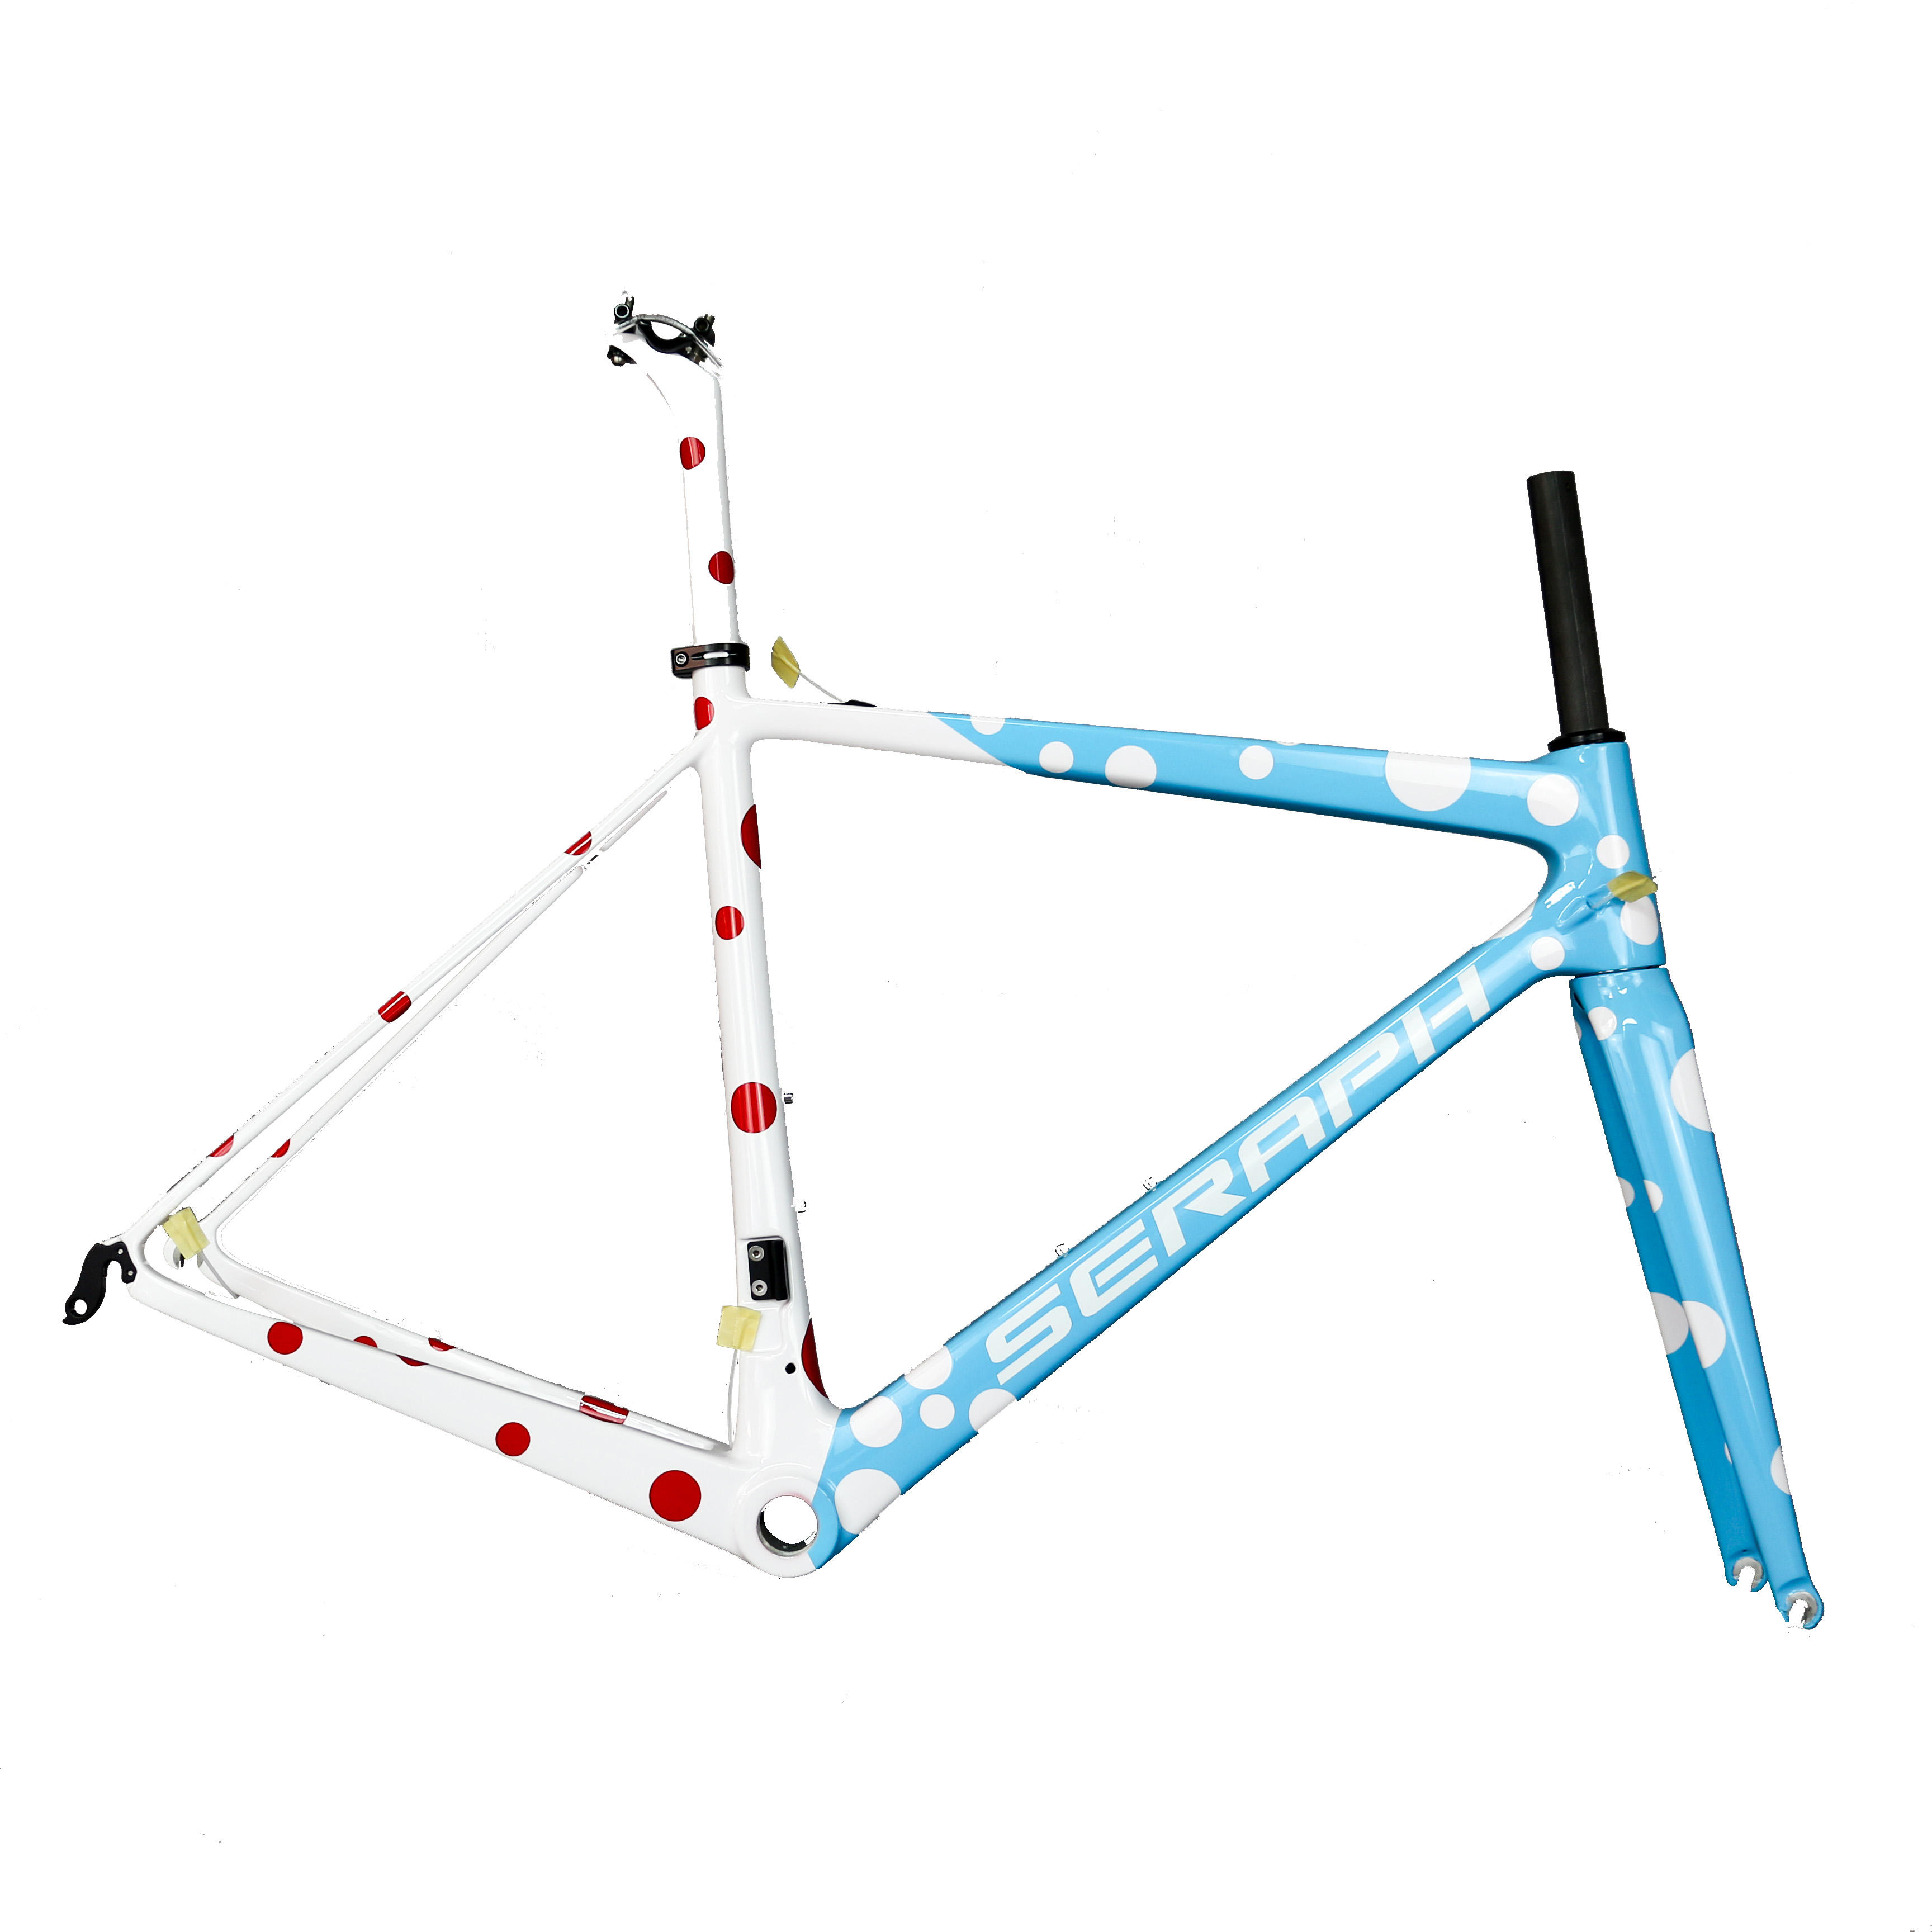 Seraph carbon fiber toray t800 bicycle frame blue and white joint paint road bike frame fm686 accept customized design